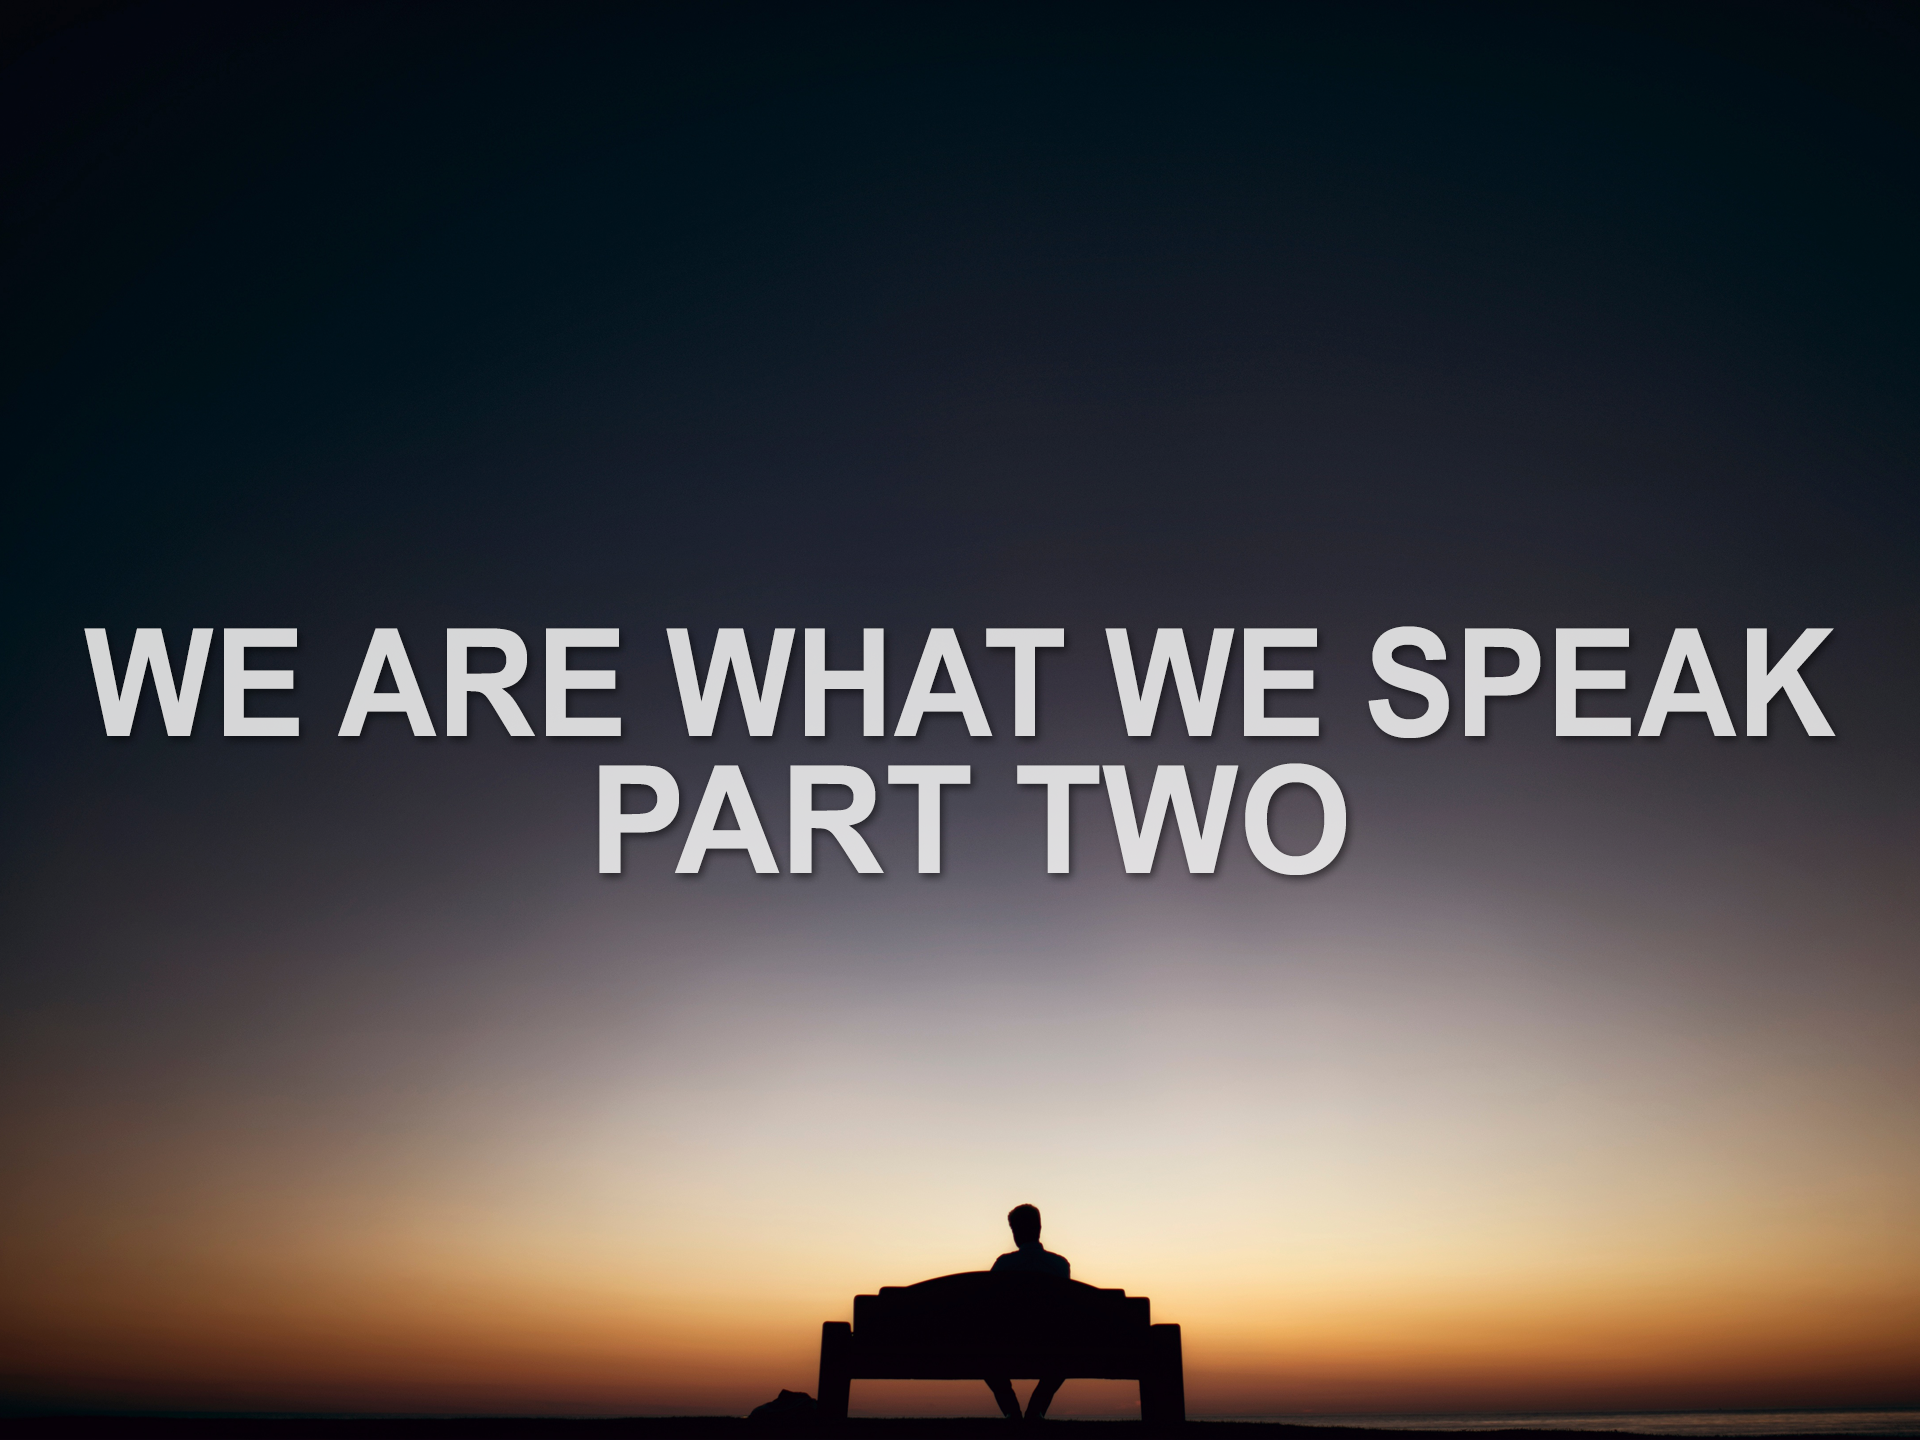 060919 we are what we speak pt 2.png